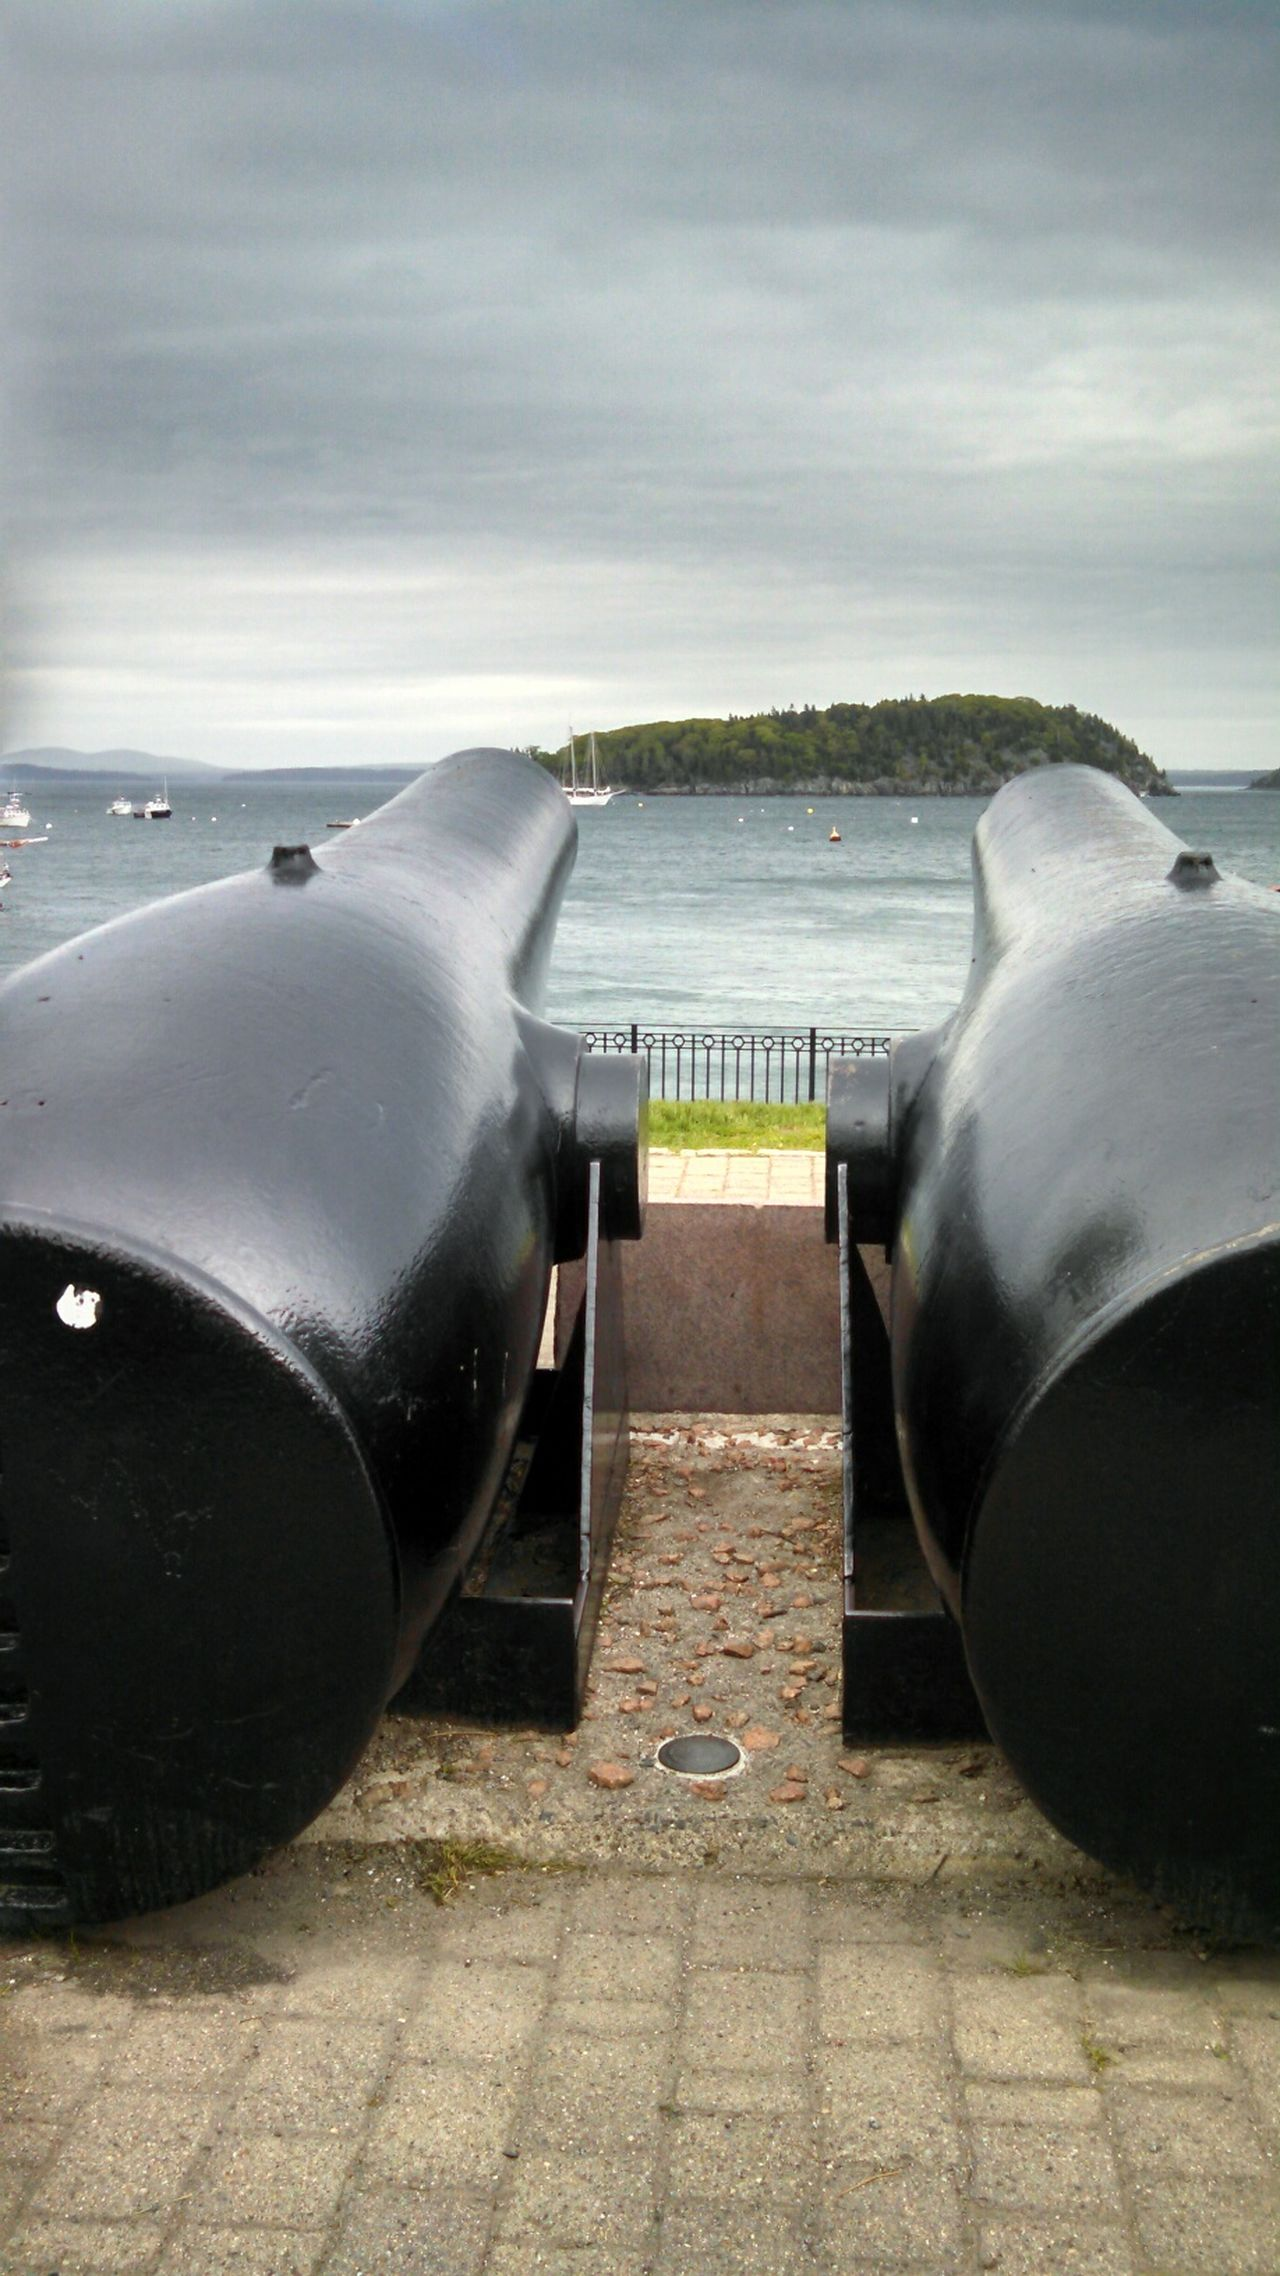 Cannon Bar Harbor Maine Double Trouble Check This Out From My Point Of View Capture The Moment Eye4photography  EyeEm Best Shots Smartphonephotography Mobile Photography Lobuephotos EyeEm Stilllife Still Life Traveling Travel Eyeem Travel Eeyem Photography Getting Inspired EyeEmBestPics No People